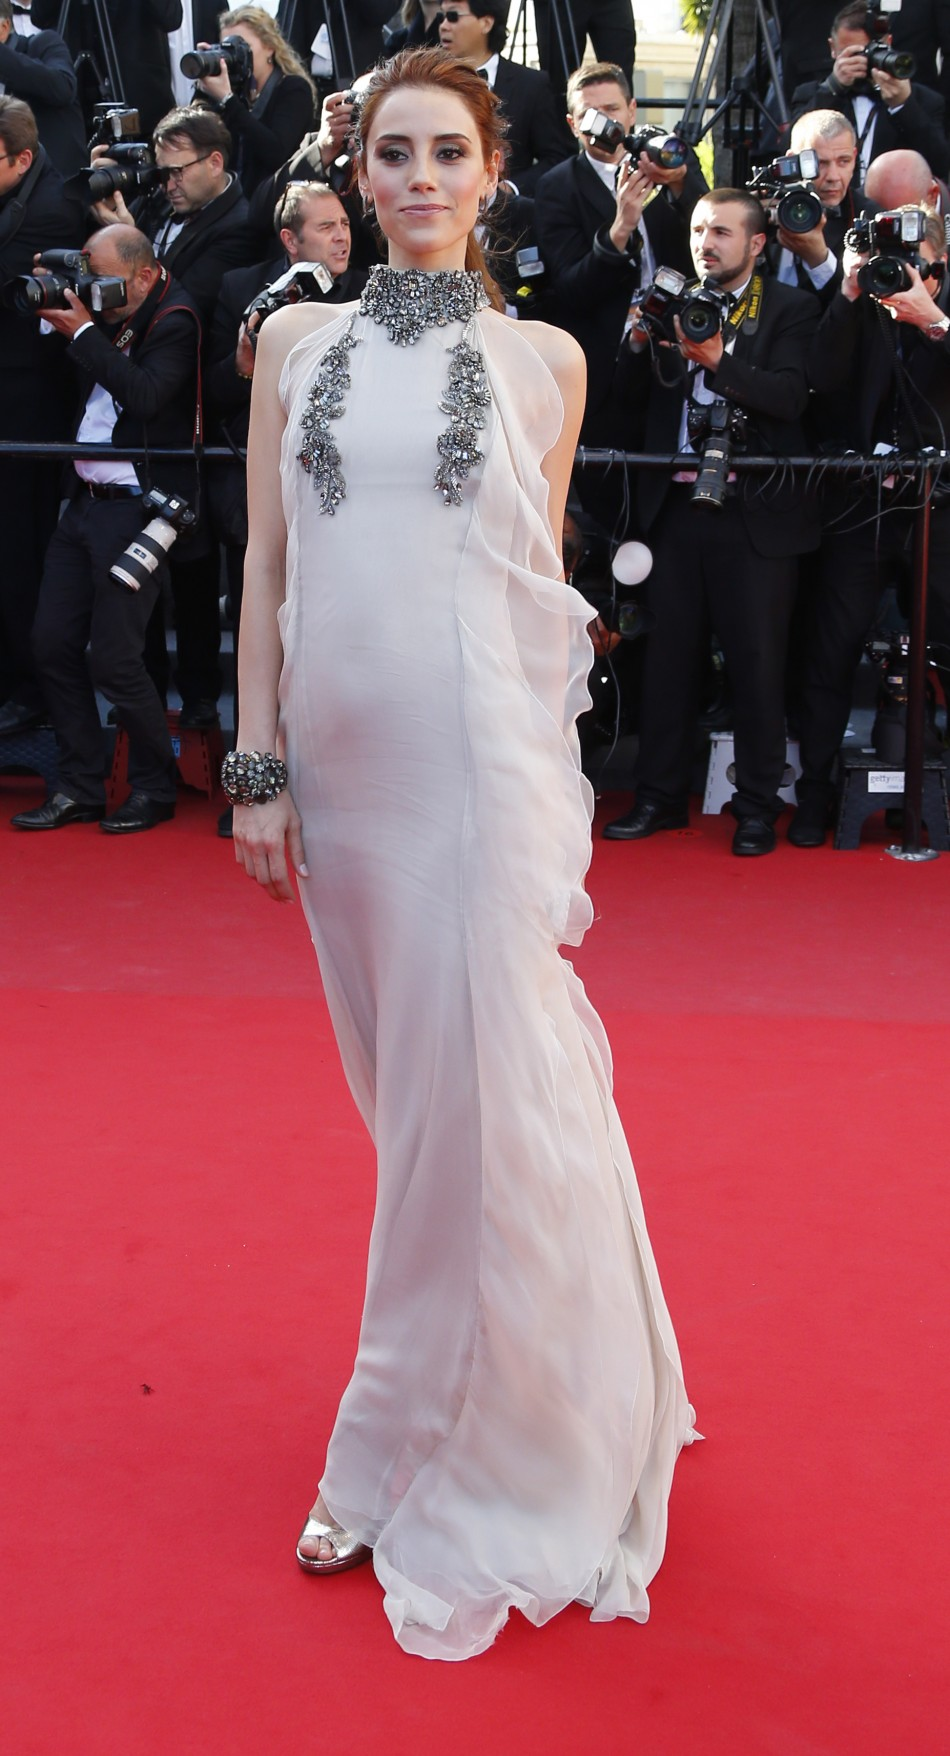 Actress Cansu Dere poses on the red carpet as she arrives for the screening of the film La Venus a la Fourrure Venus in Fur in competition during the 66th Cannes Film Festival in Cannes May 25, 2013.